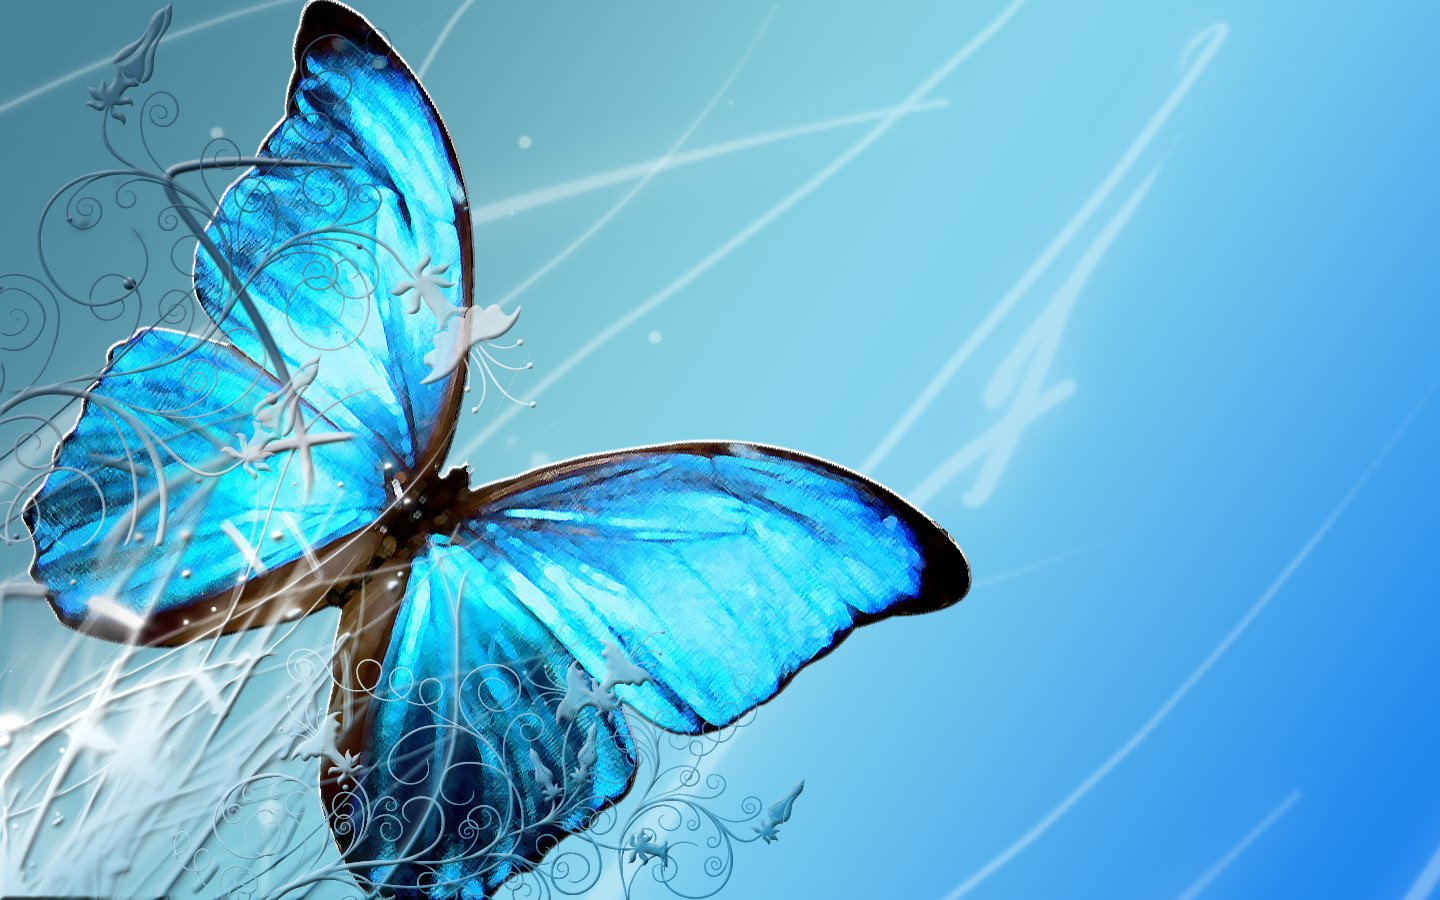 Butterfly Wallpaper 3D Wallpaper Nature Wallpaper Download 1440x900